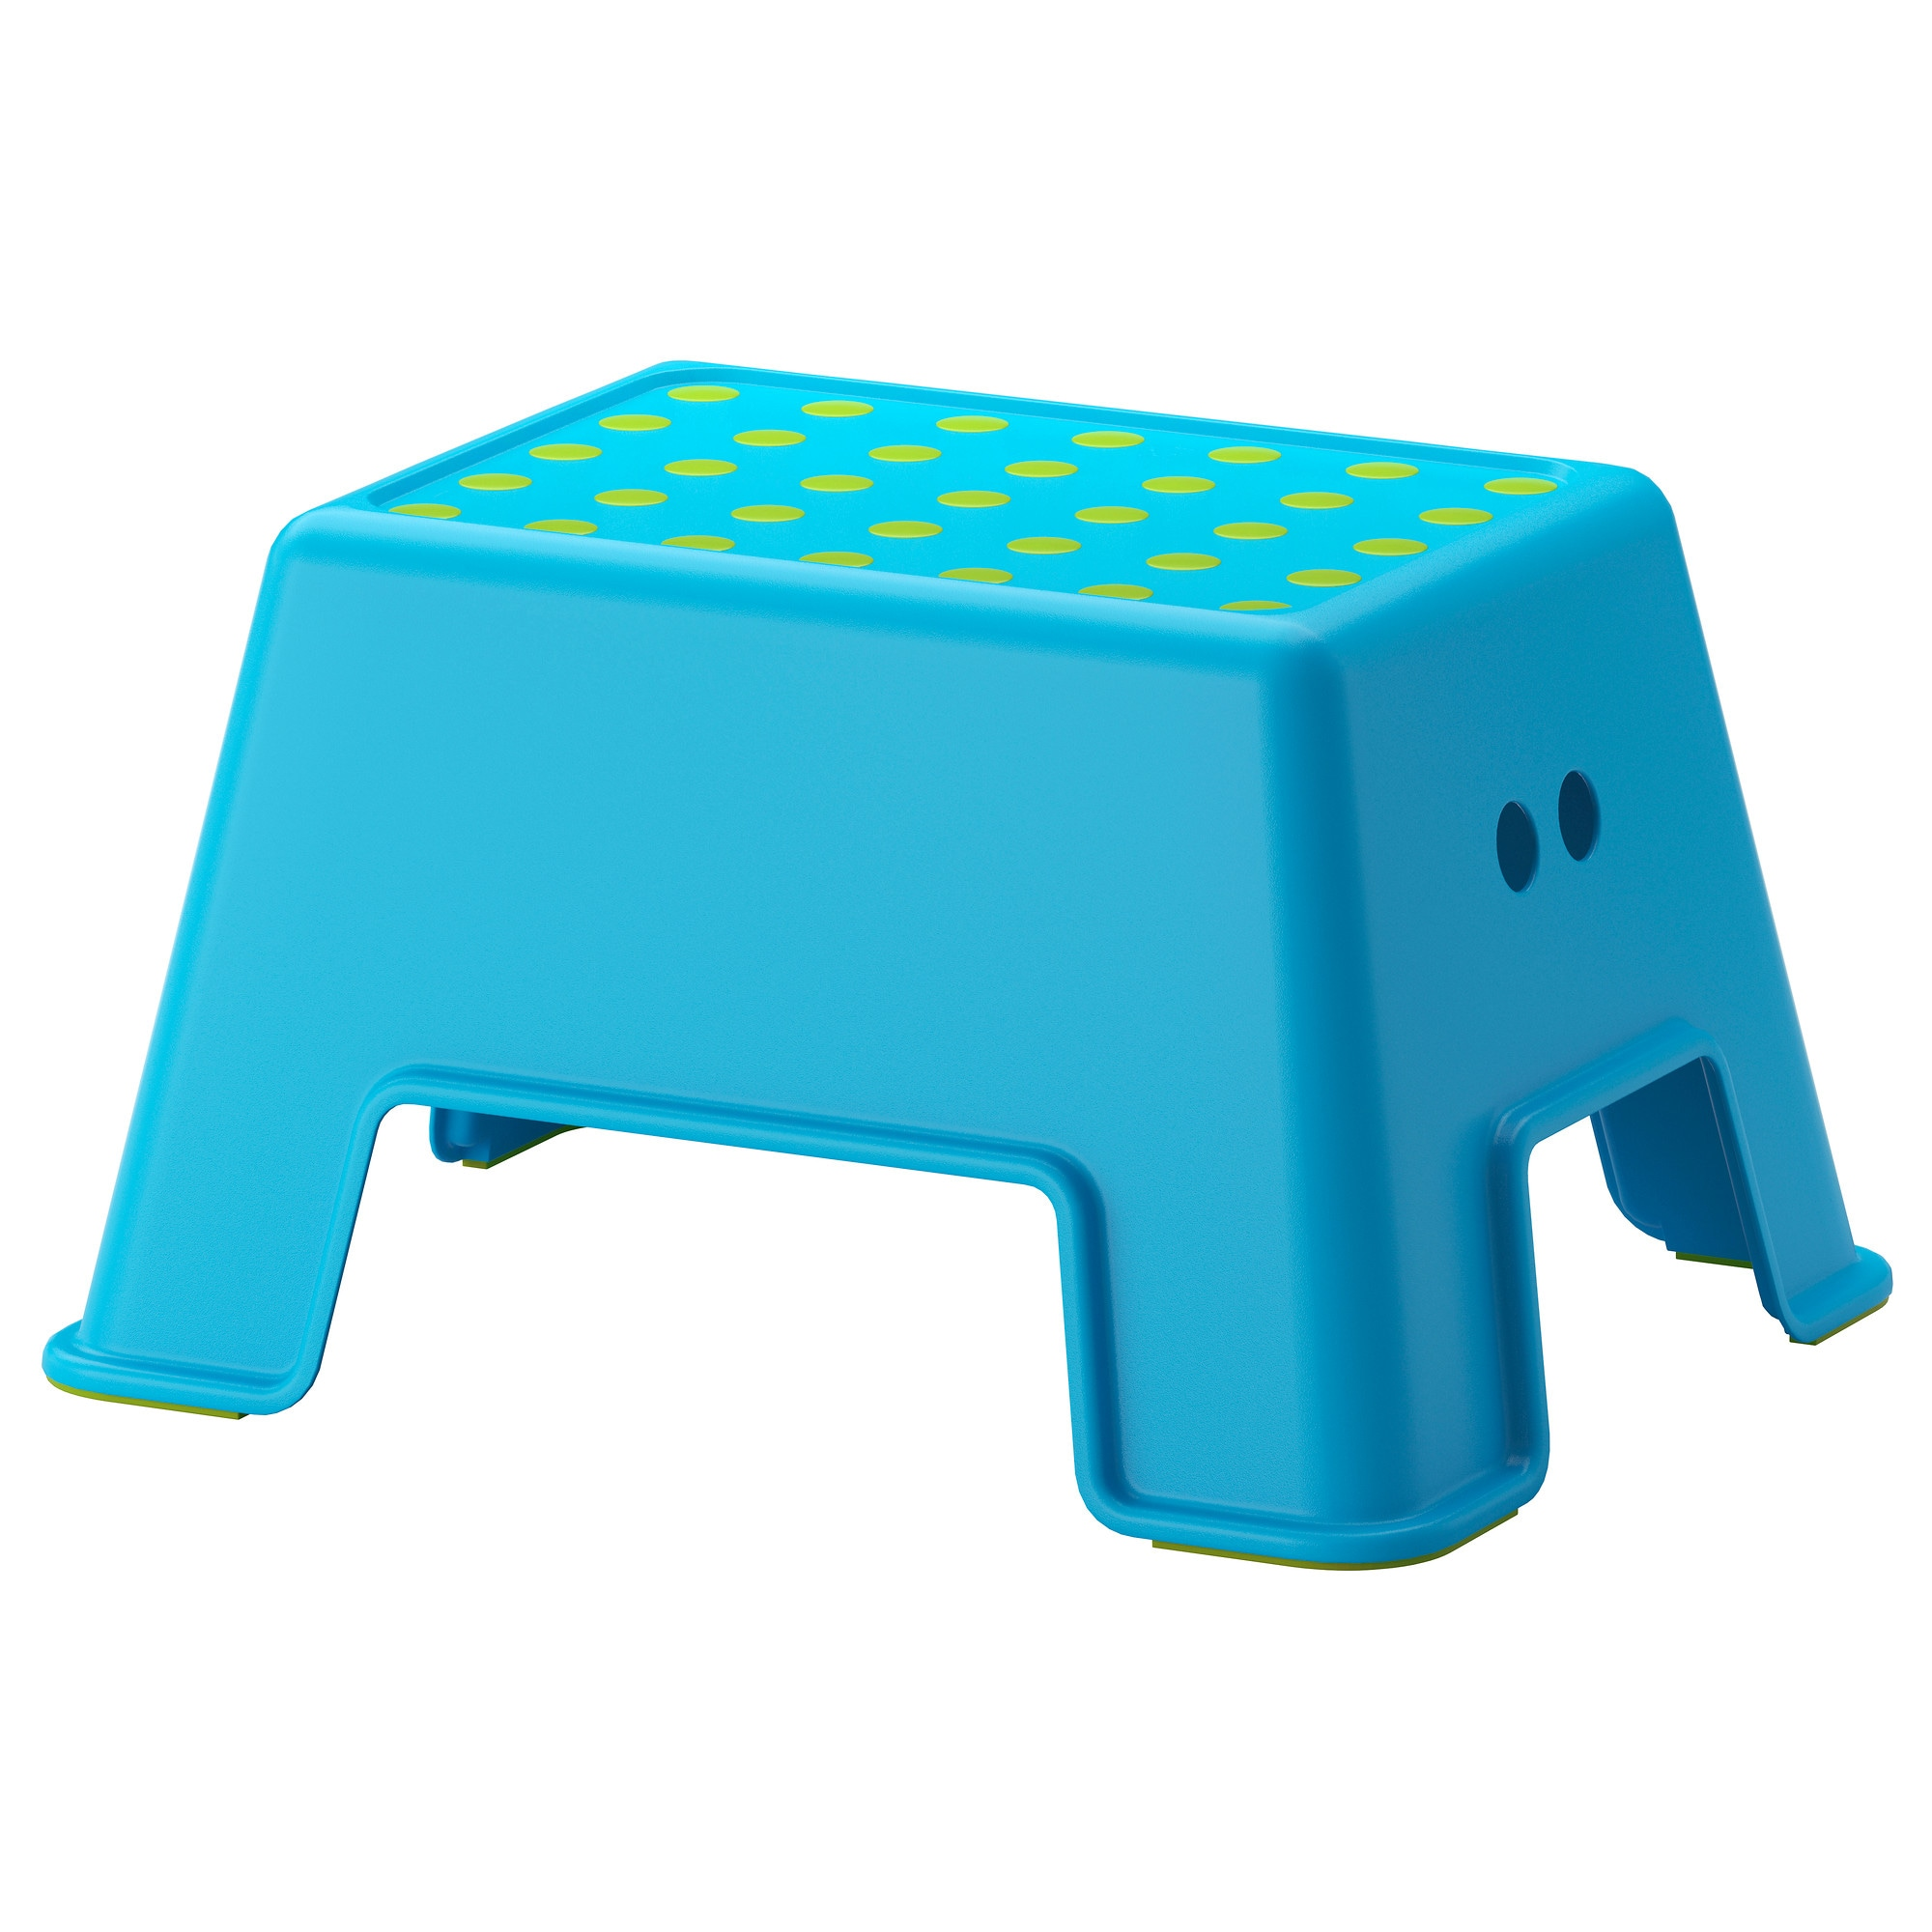 BOLMEN step stool blue Width 17 3/8   Depth 13 3  sc 1 st  Ikea : bath stools for disabled - islam-shia.org